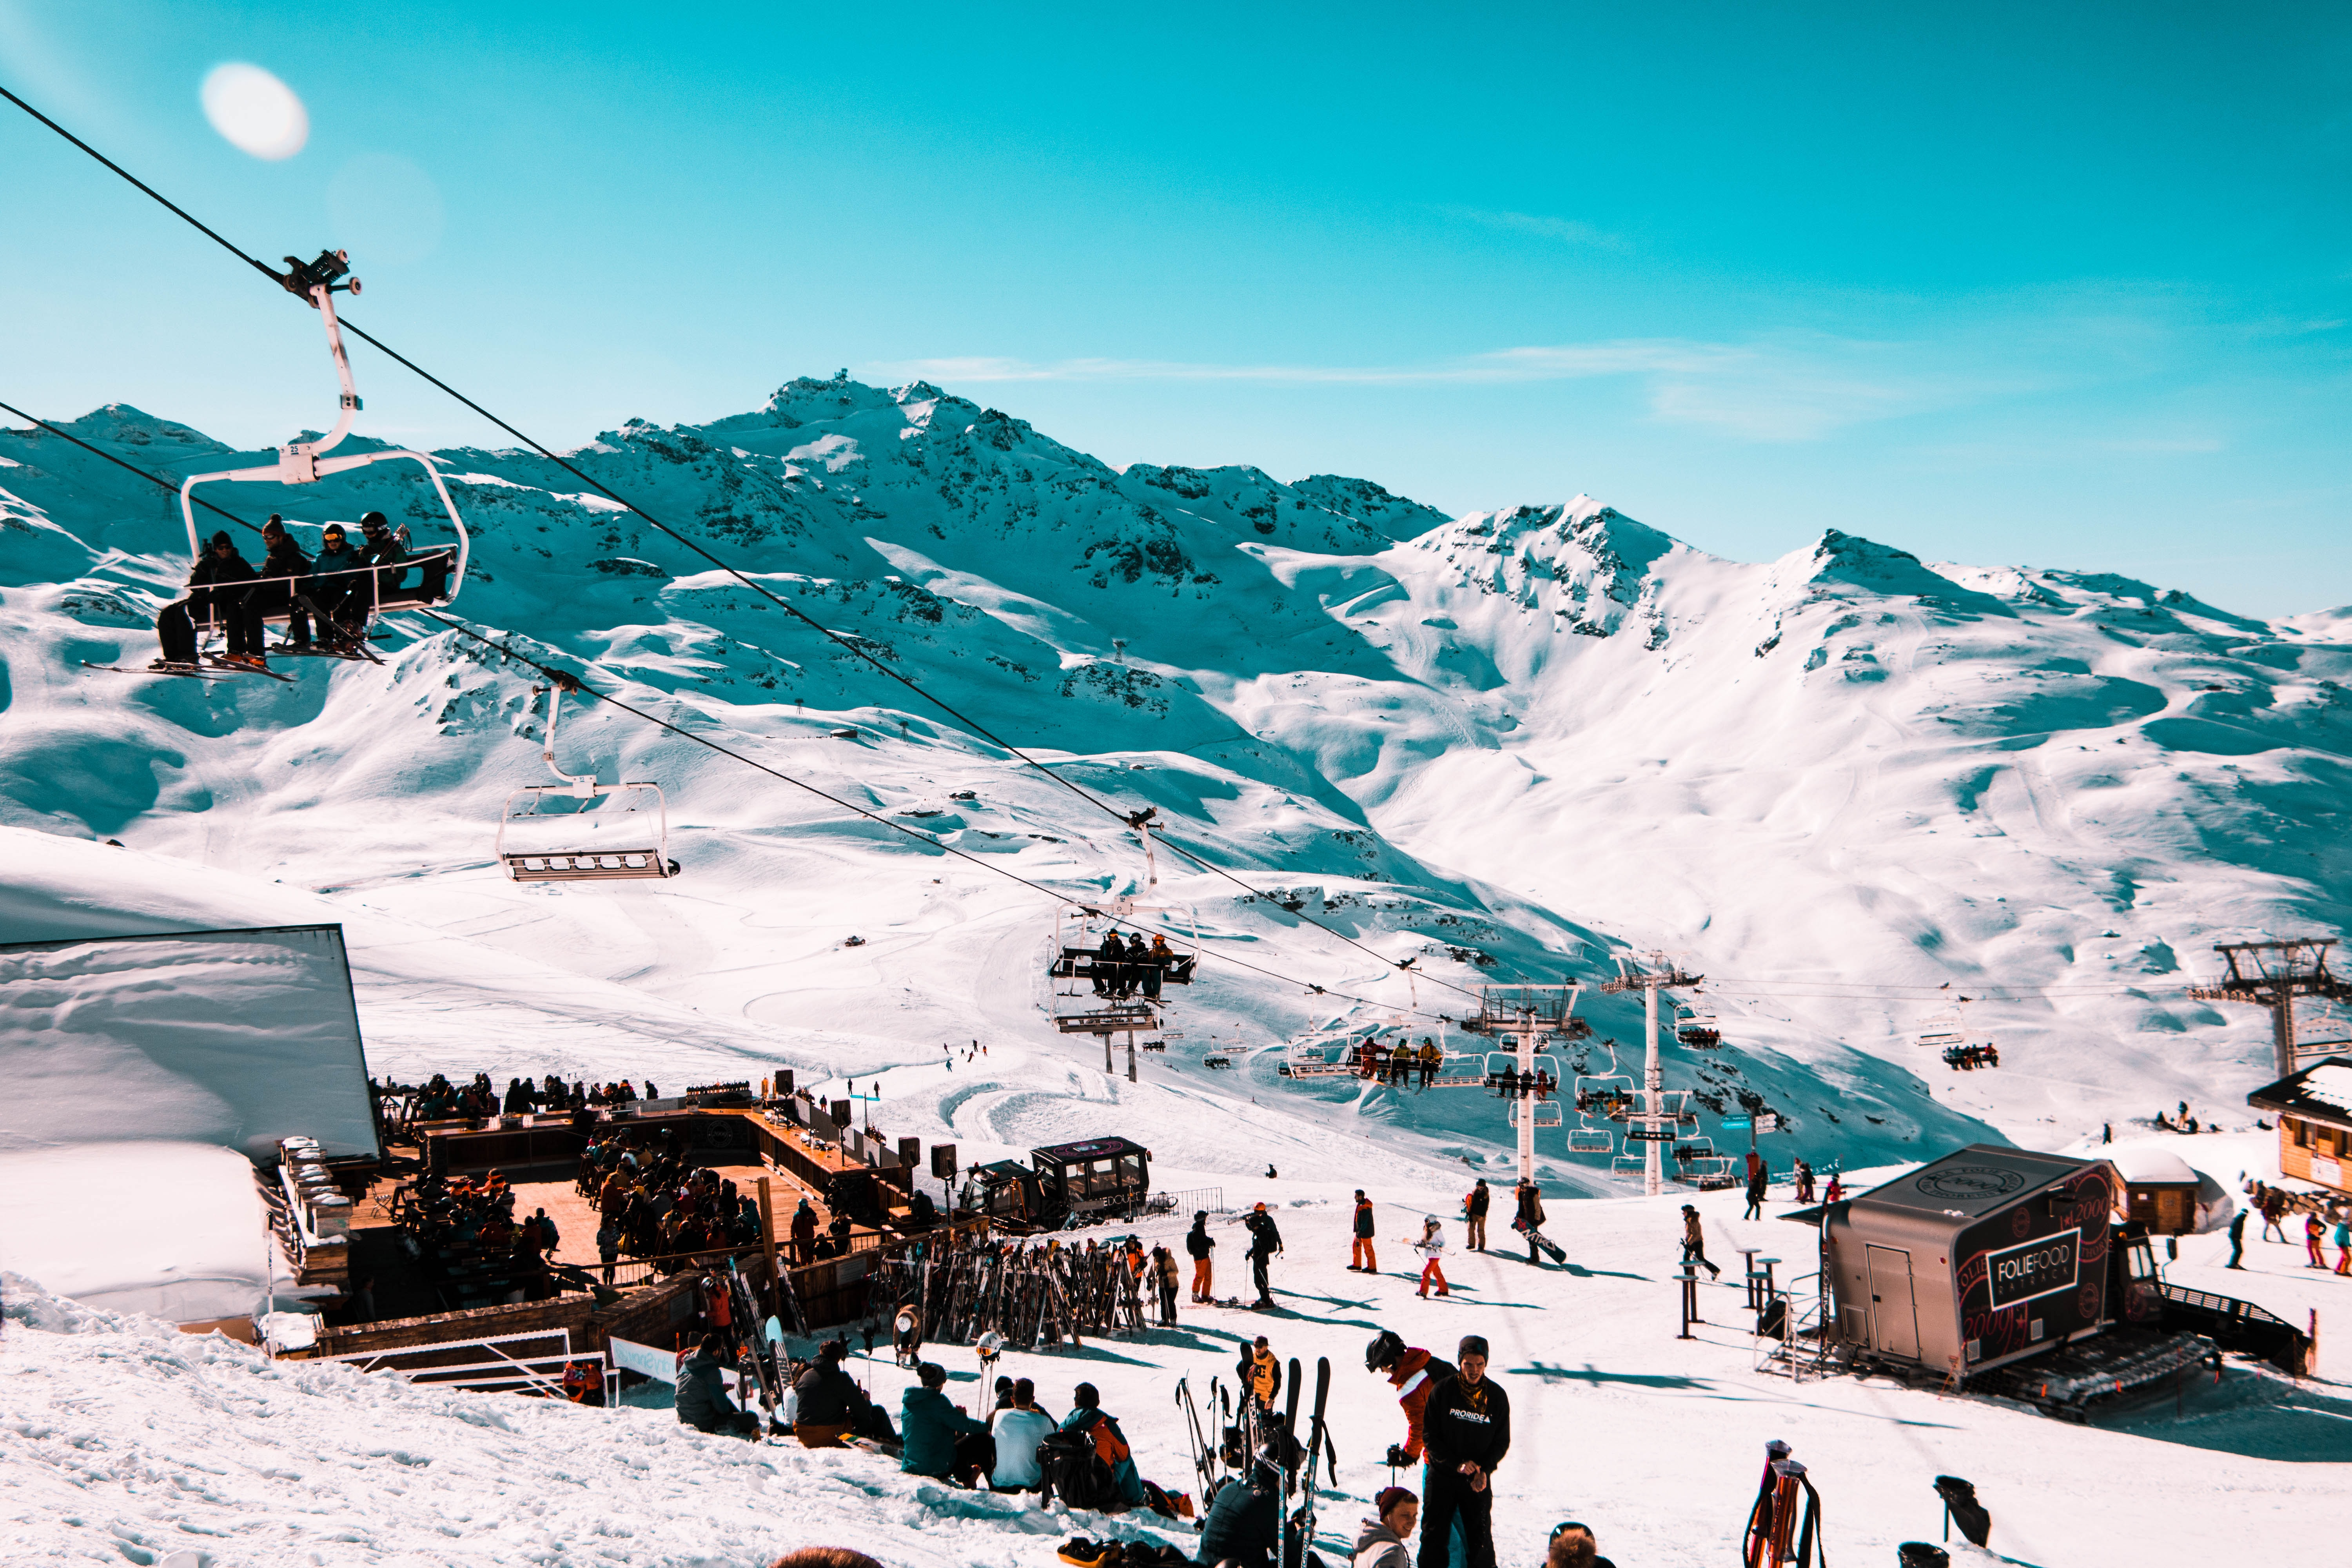 La Folie Douce Val Thorens France Pictures Download Free Images